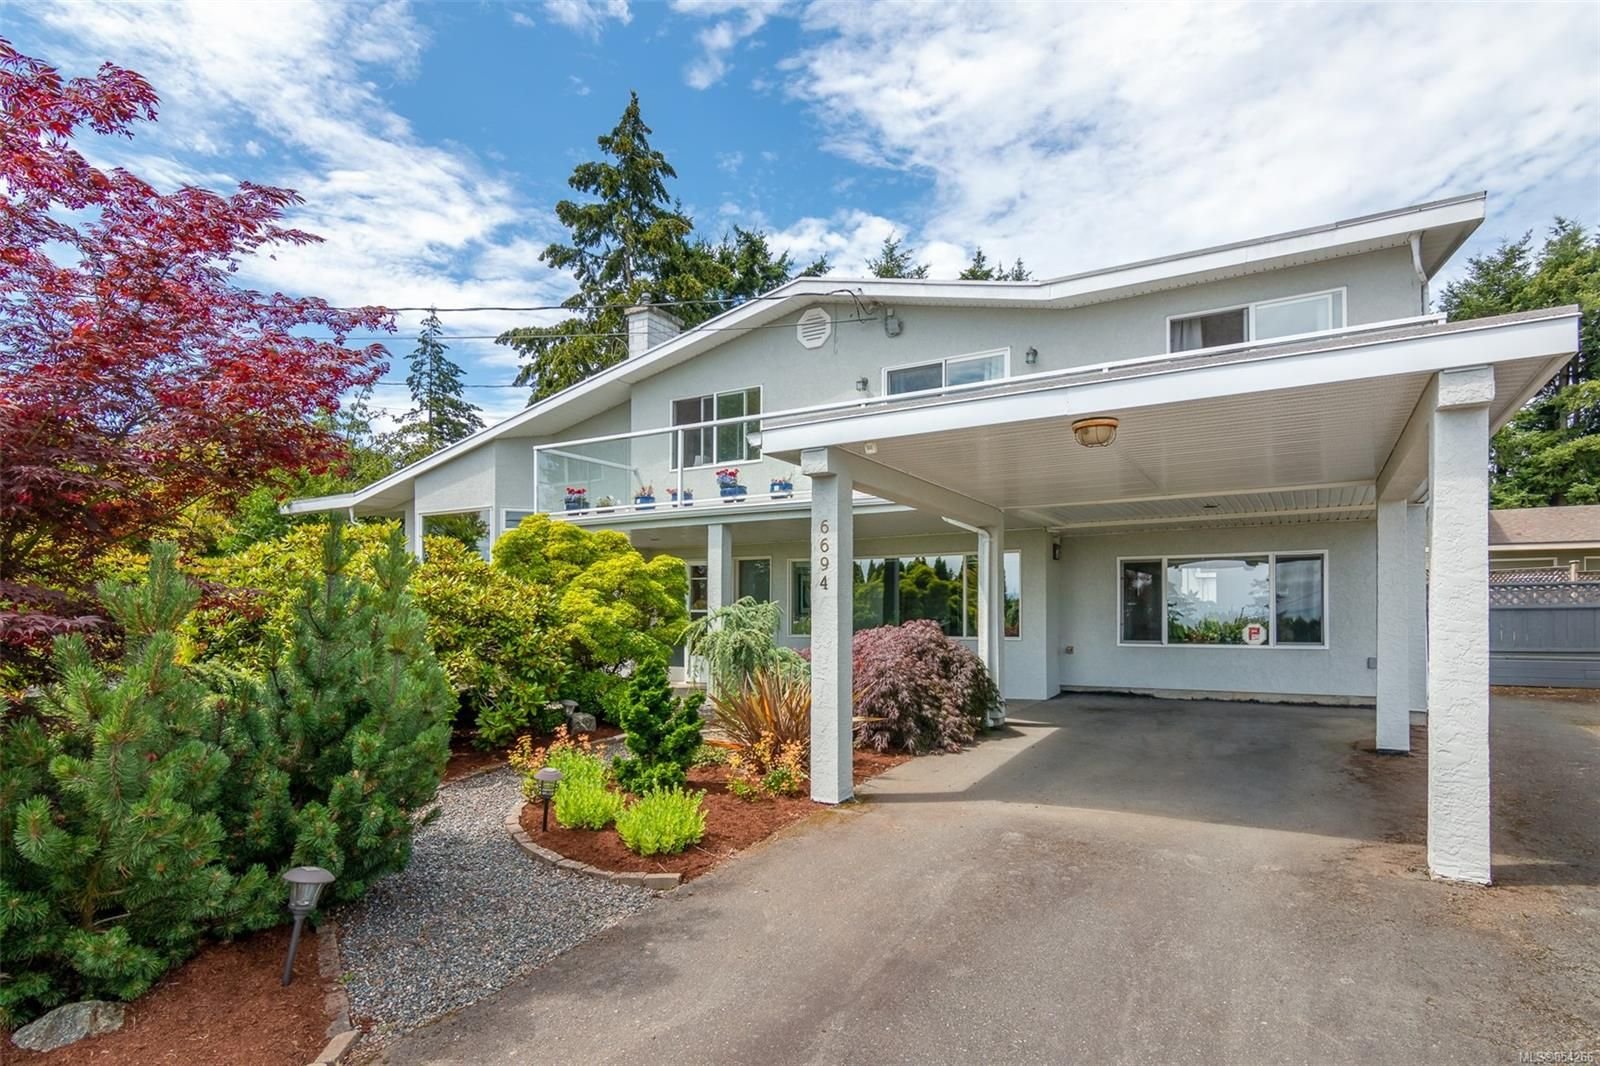 Main Photo: 6694 Tamany Dr in : CS Tanner House for sale (Central Saanich)  : MLS®# 854266